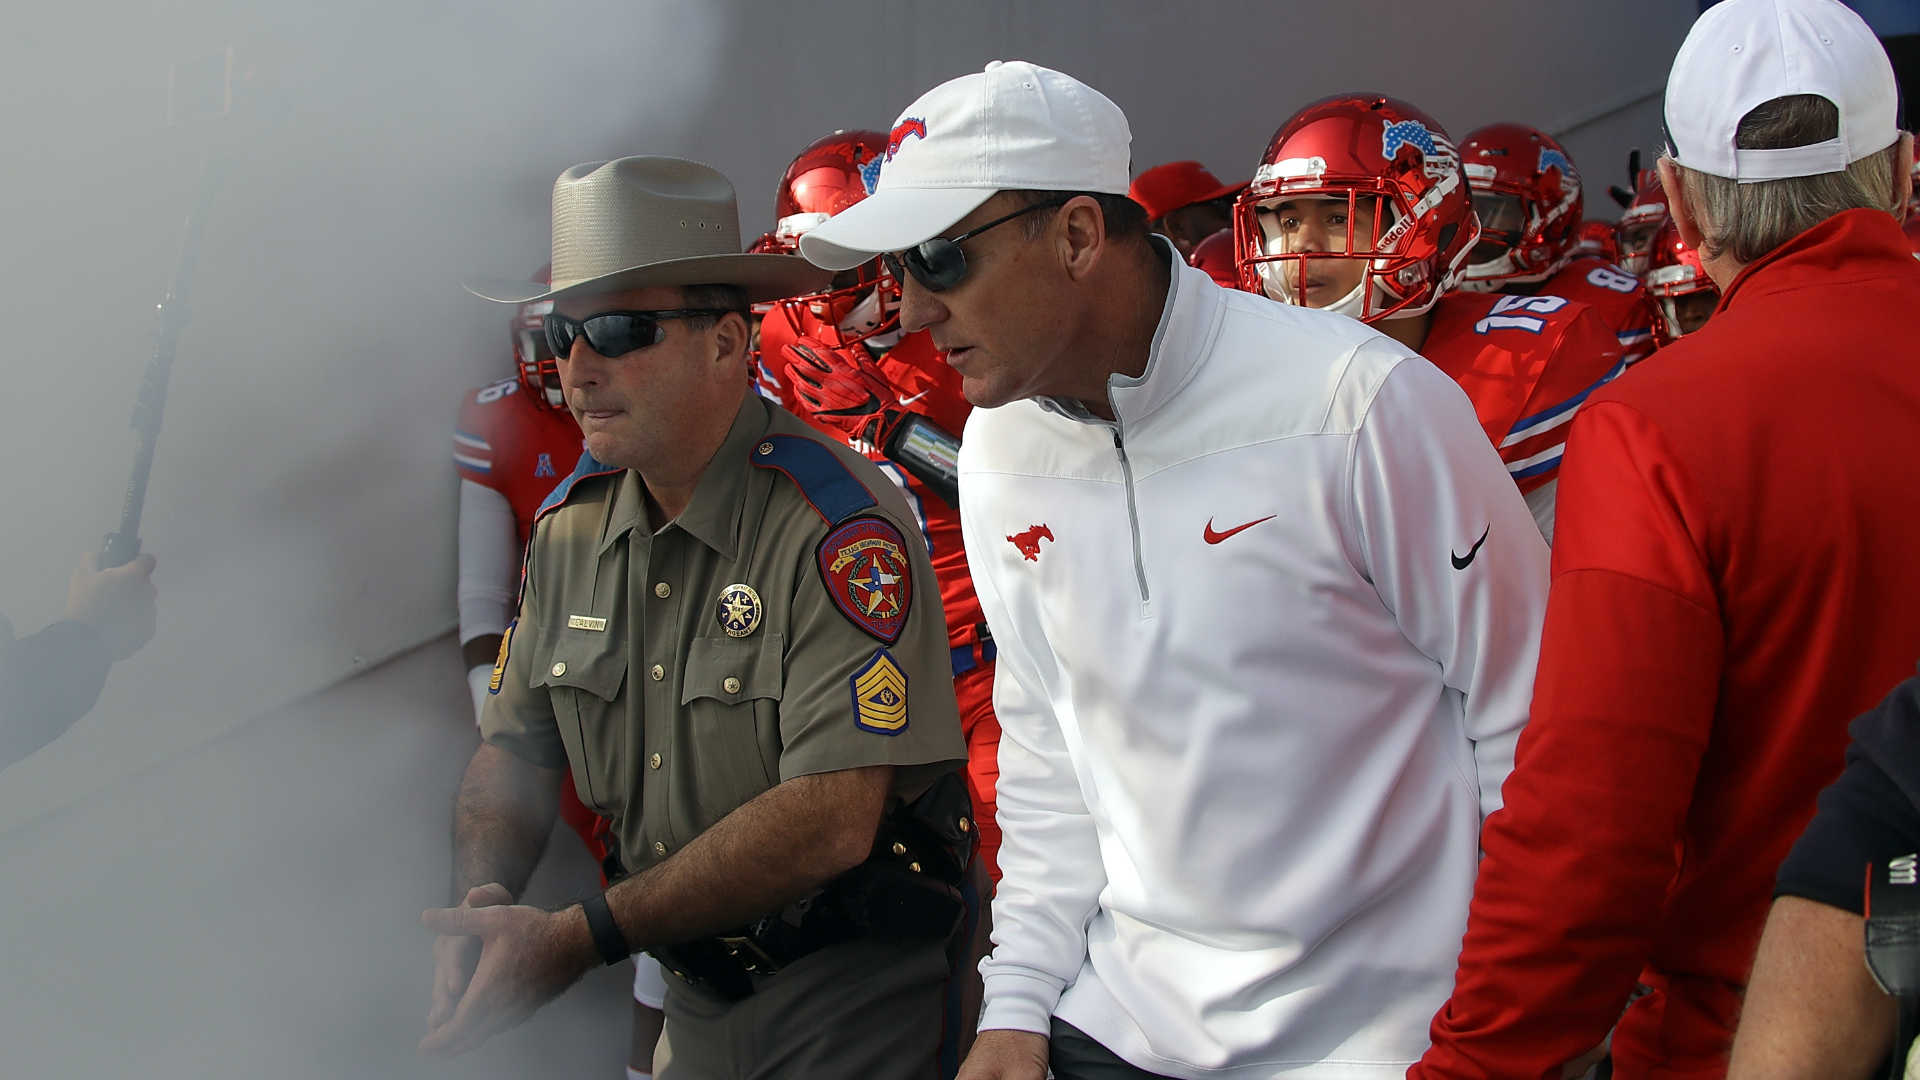 Chad Morris leaves SMU, becomes Arkansas head coach